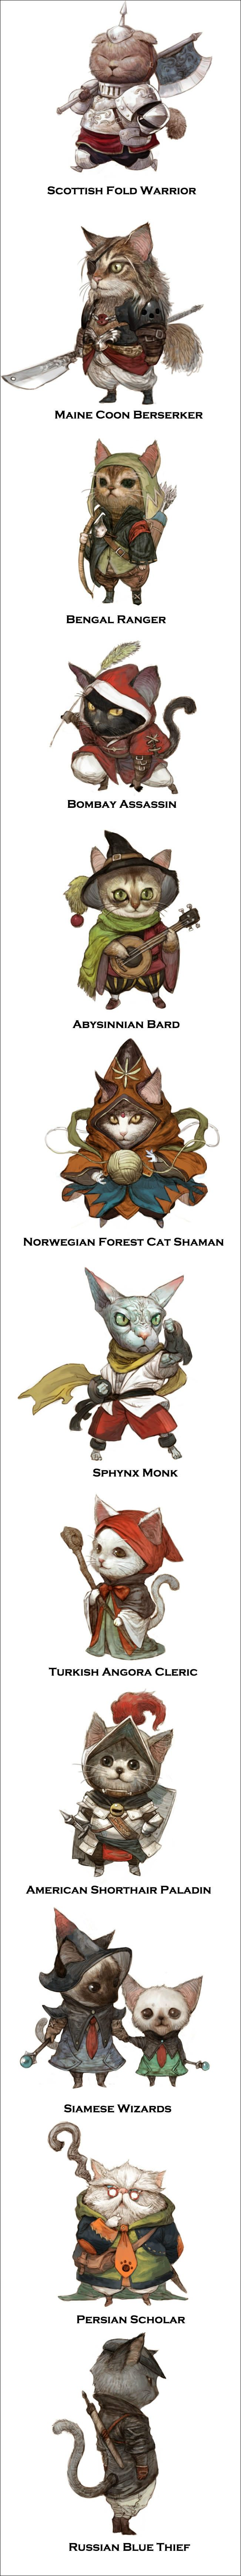 Role Playing Floofs - Gamer classes as cat breeds. The Maine Coon Berserker!!